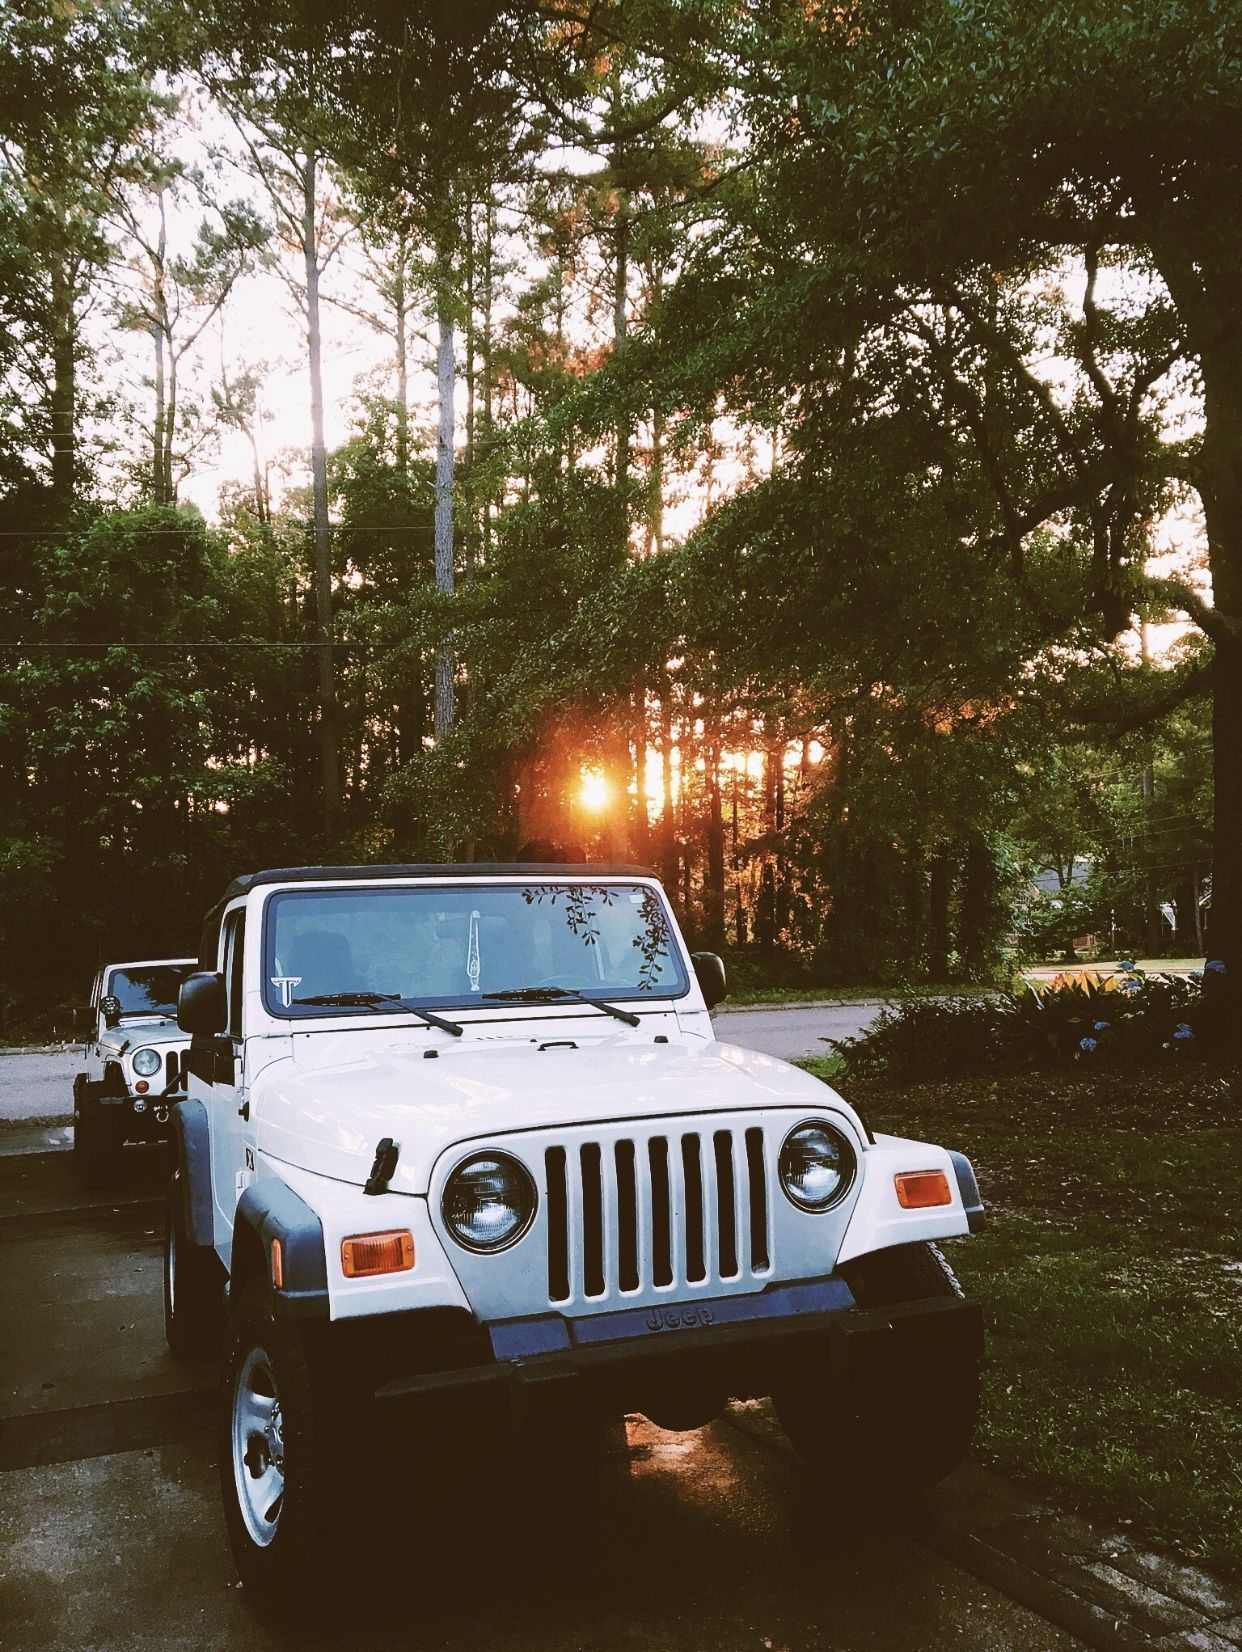 White Jeep Wallpapers Top Free White Jeep Backgrounds Wallpaperaccess Jeep Wallpaper Jeep Wrangler Dream Cars Jeep